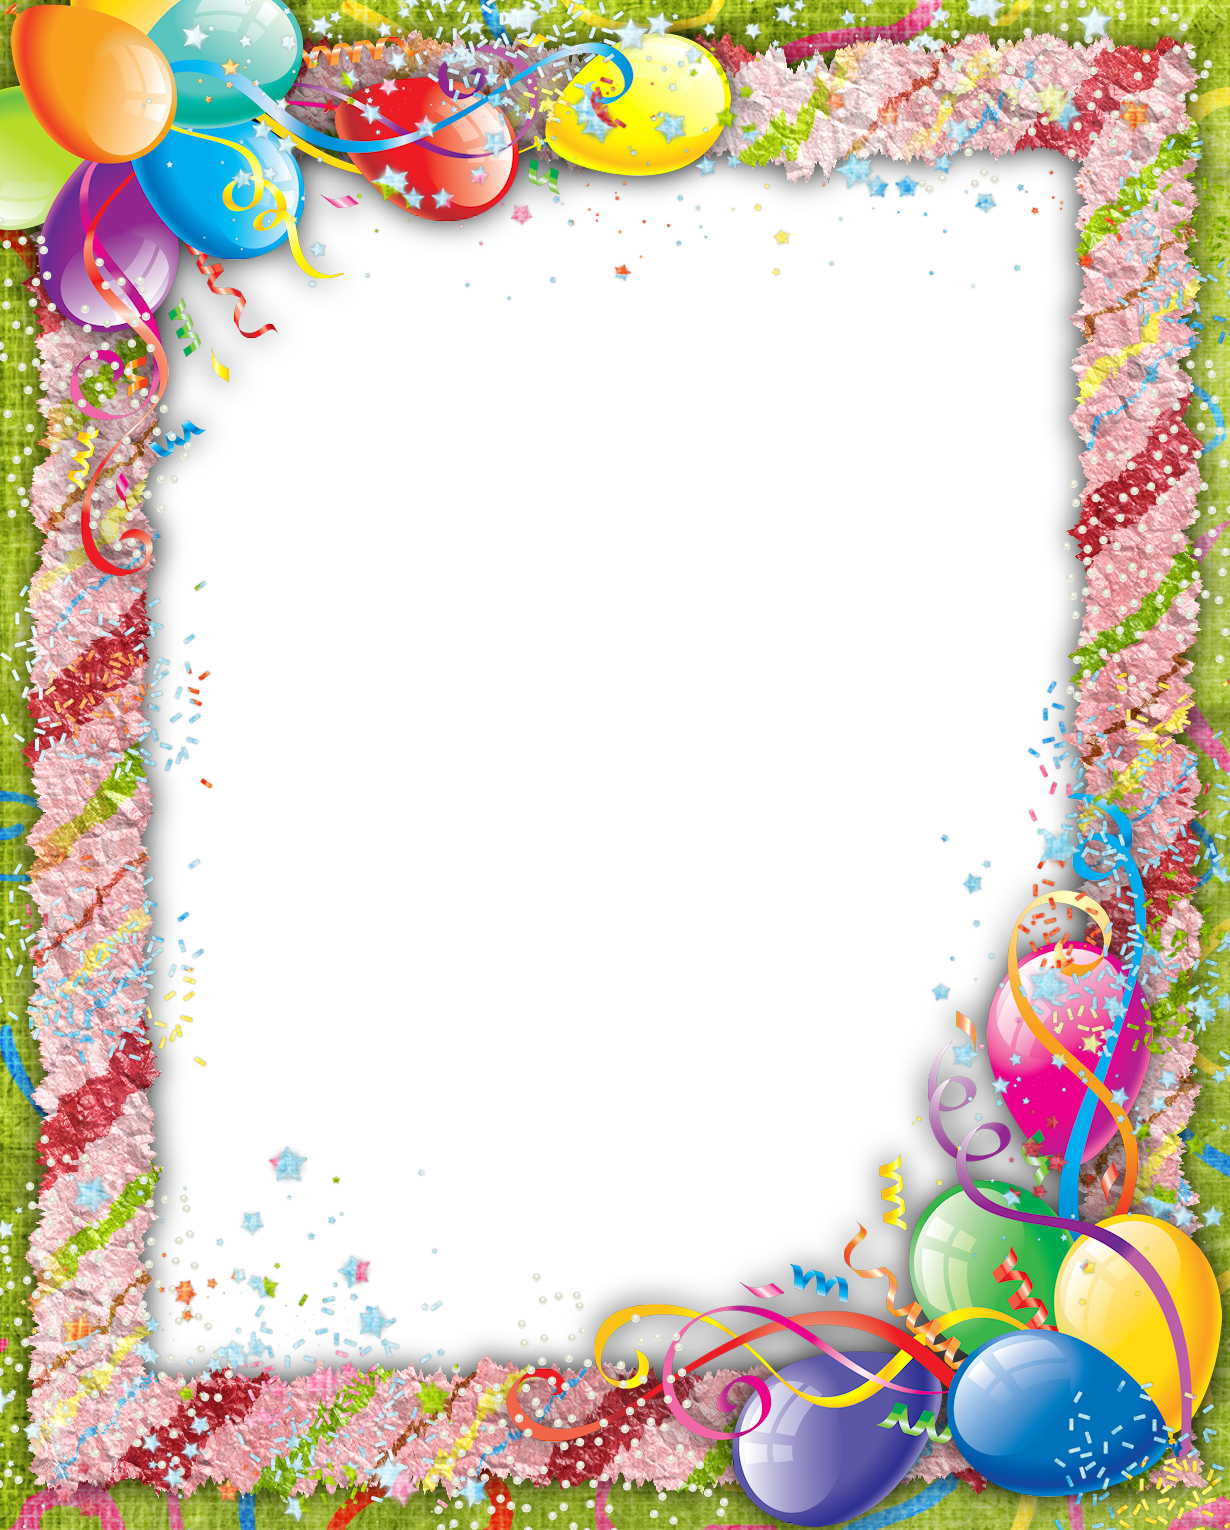 Transparent gallery yopriceville high. Birthday frame png